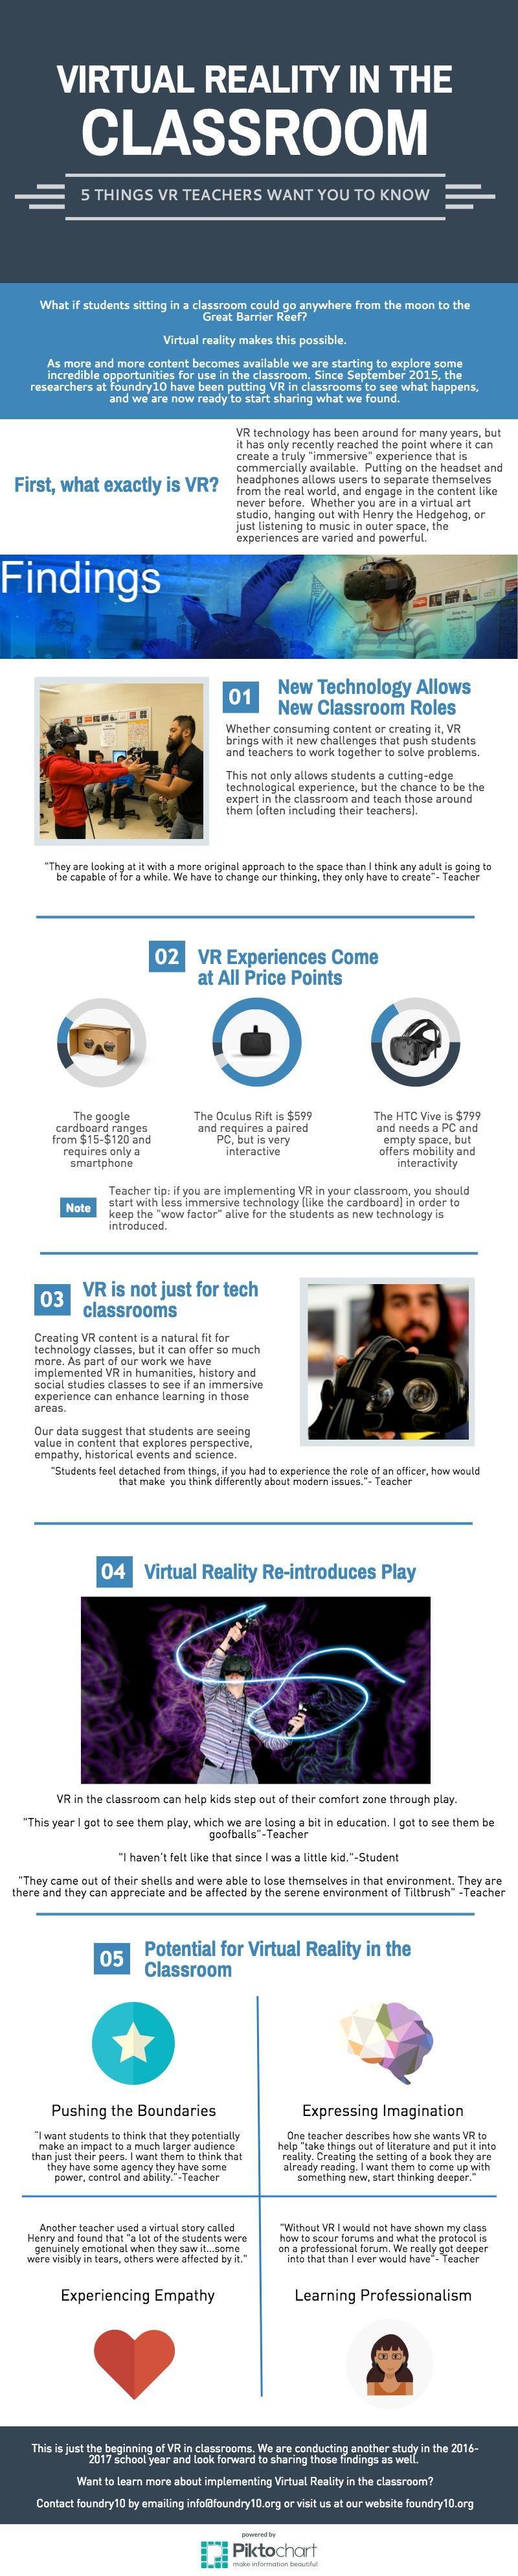 Virtual Reality in the Classroom: 5 Things VR Teachers Want You to Know